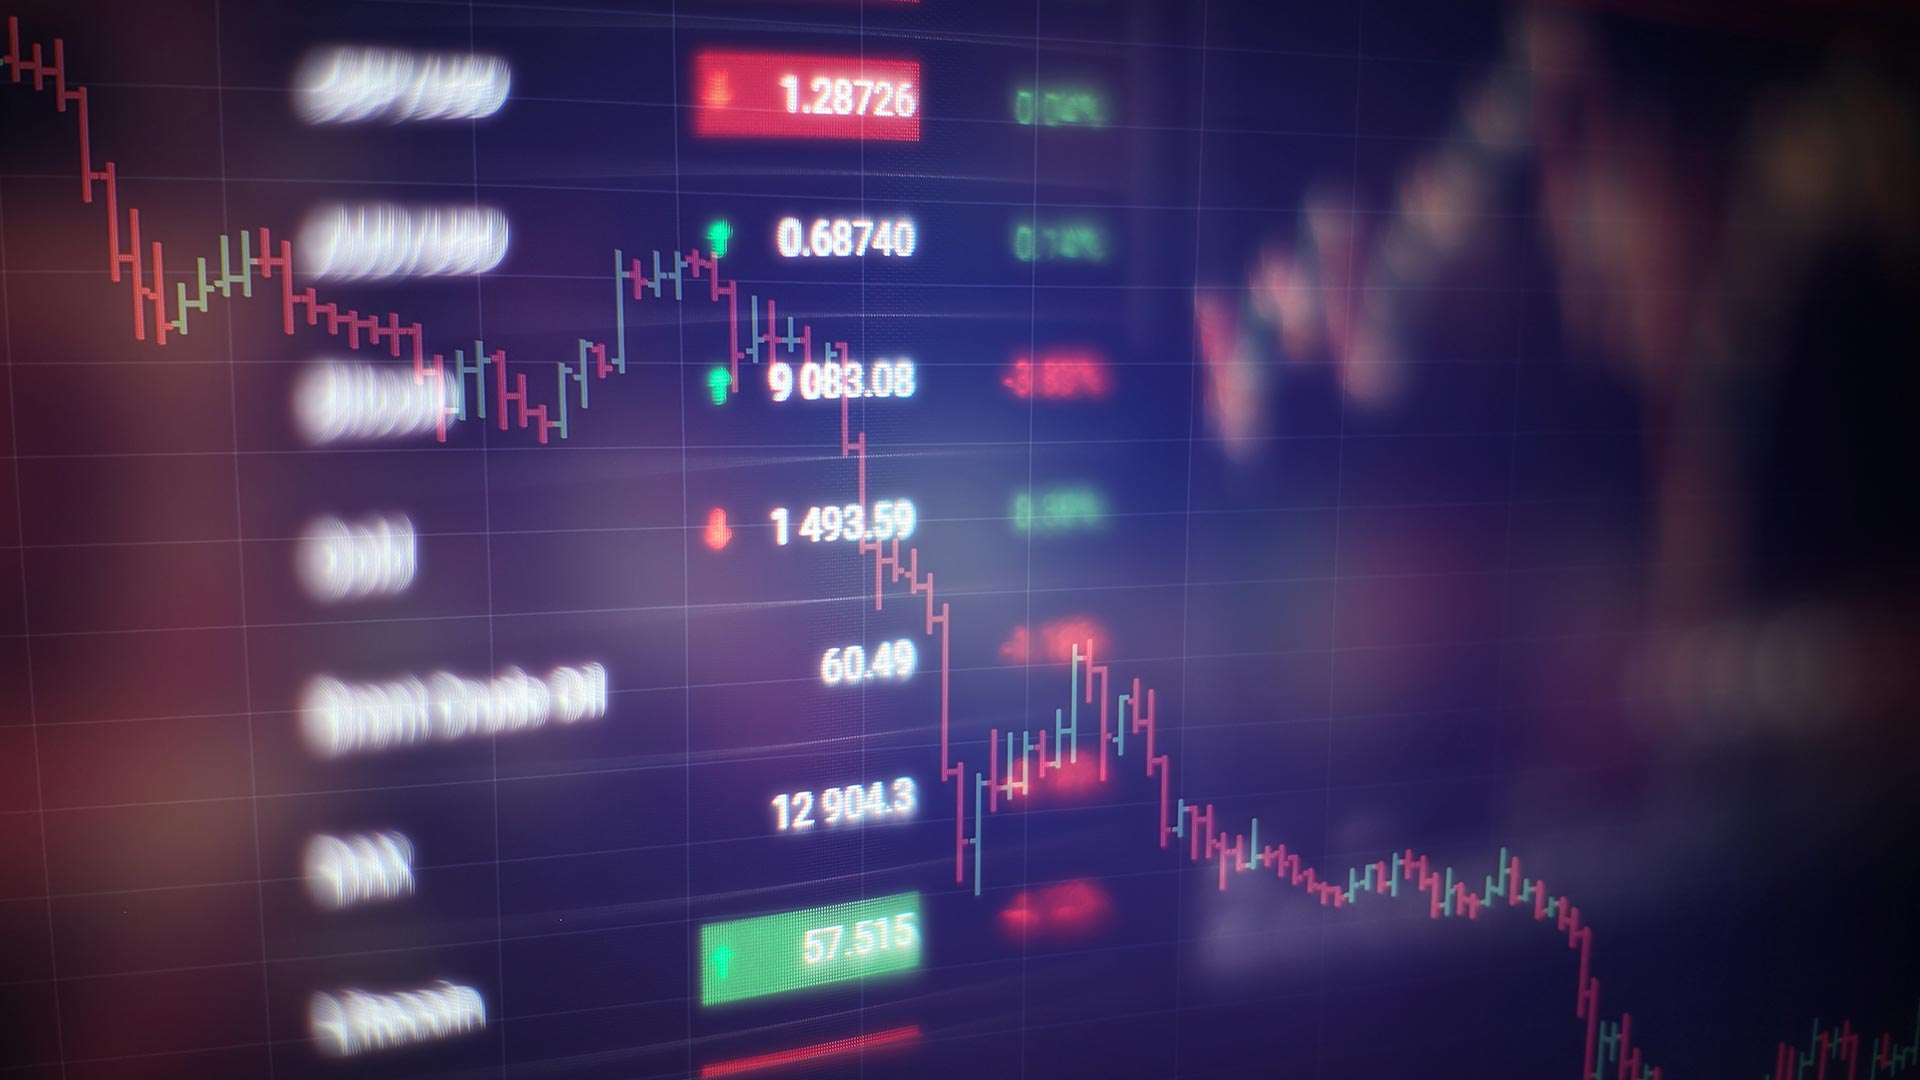 Financial charts and numbers